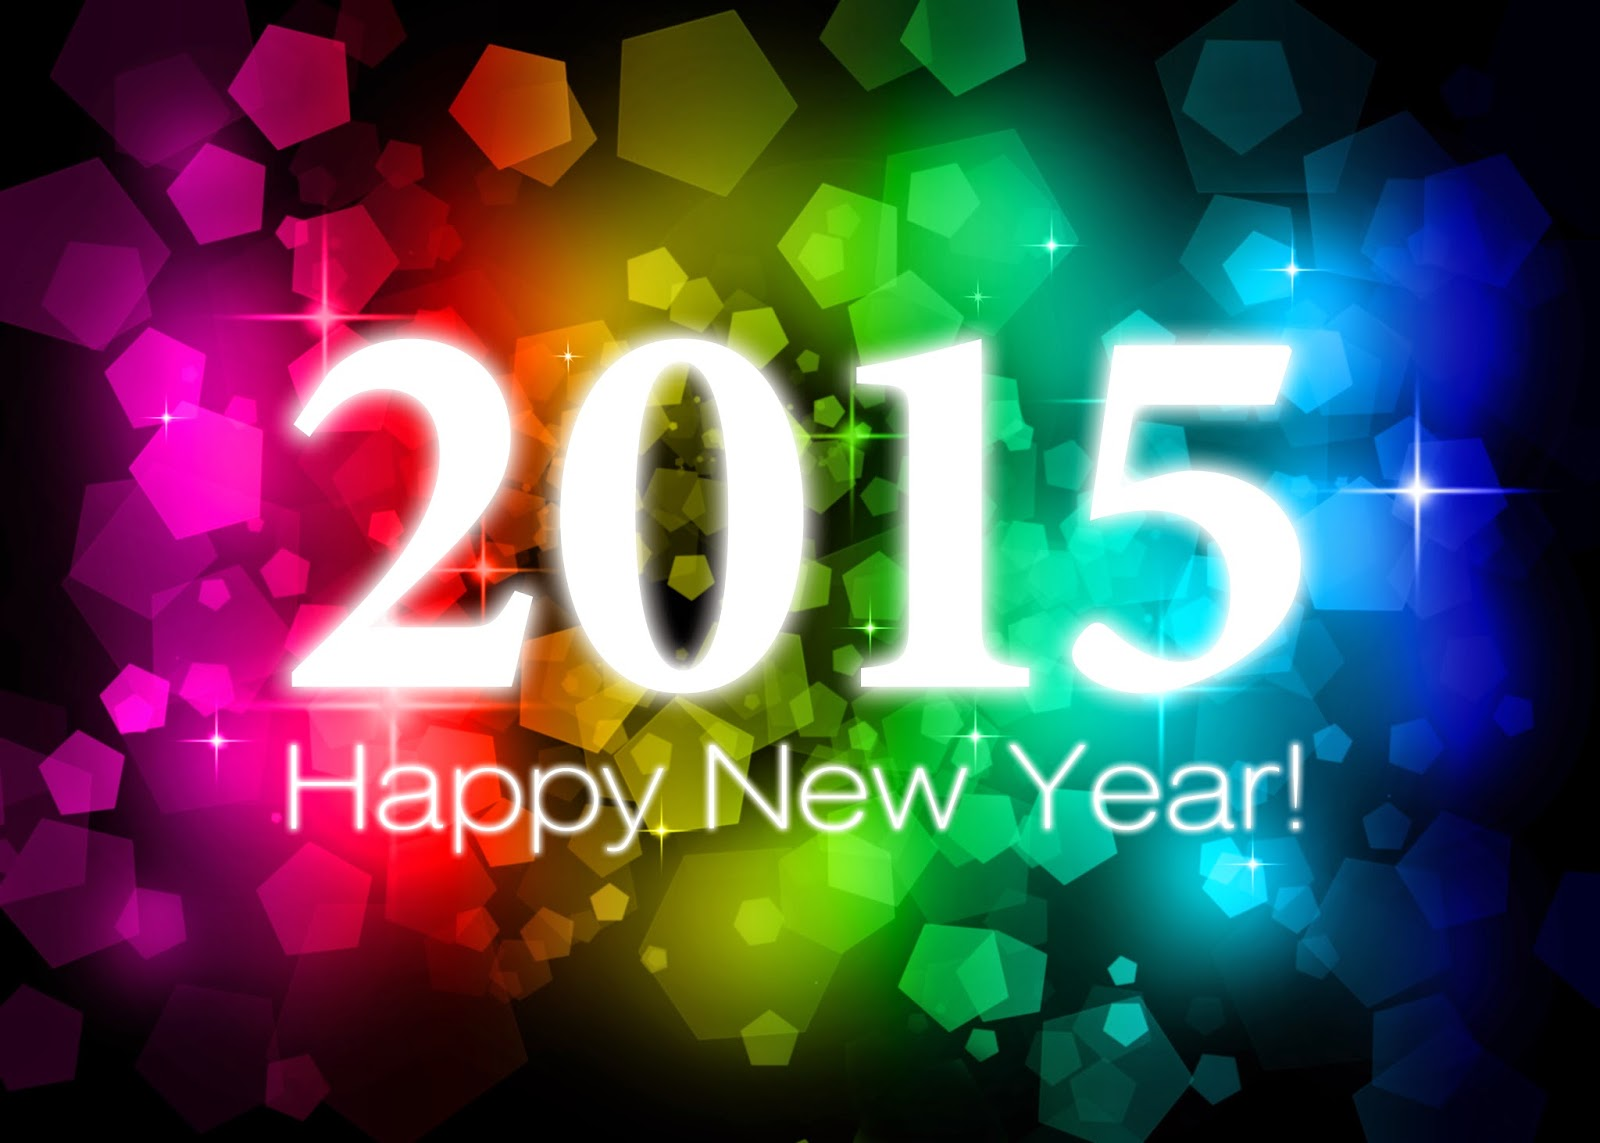 Happy New Year 2015, part 7